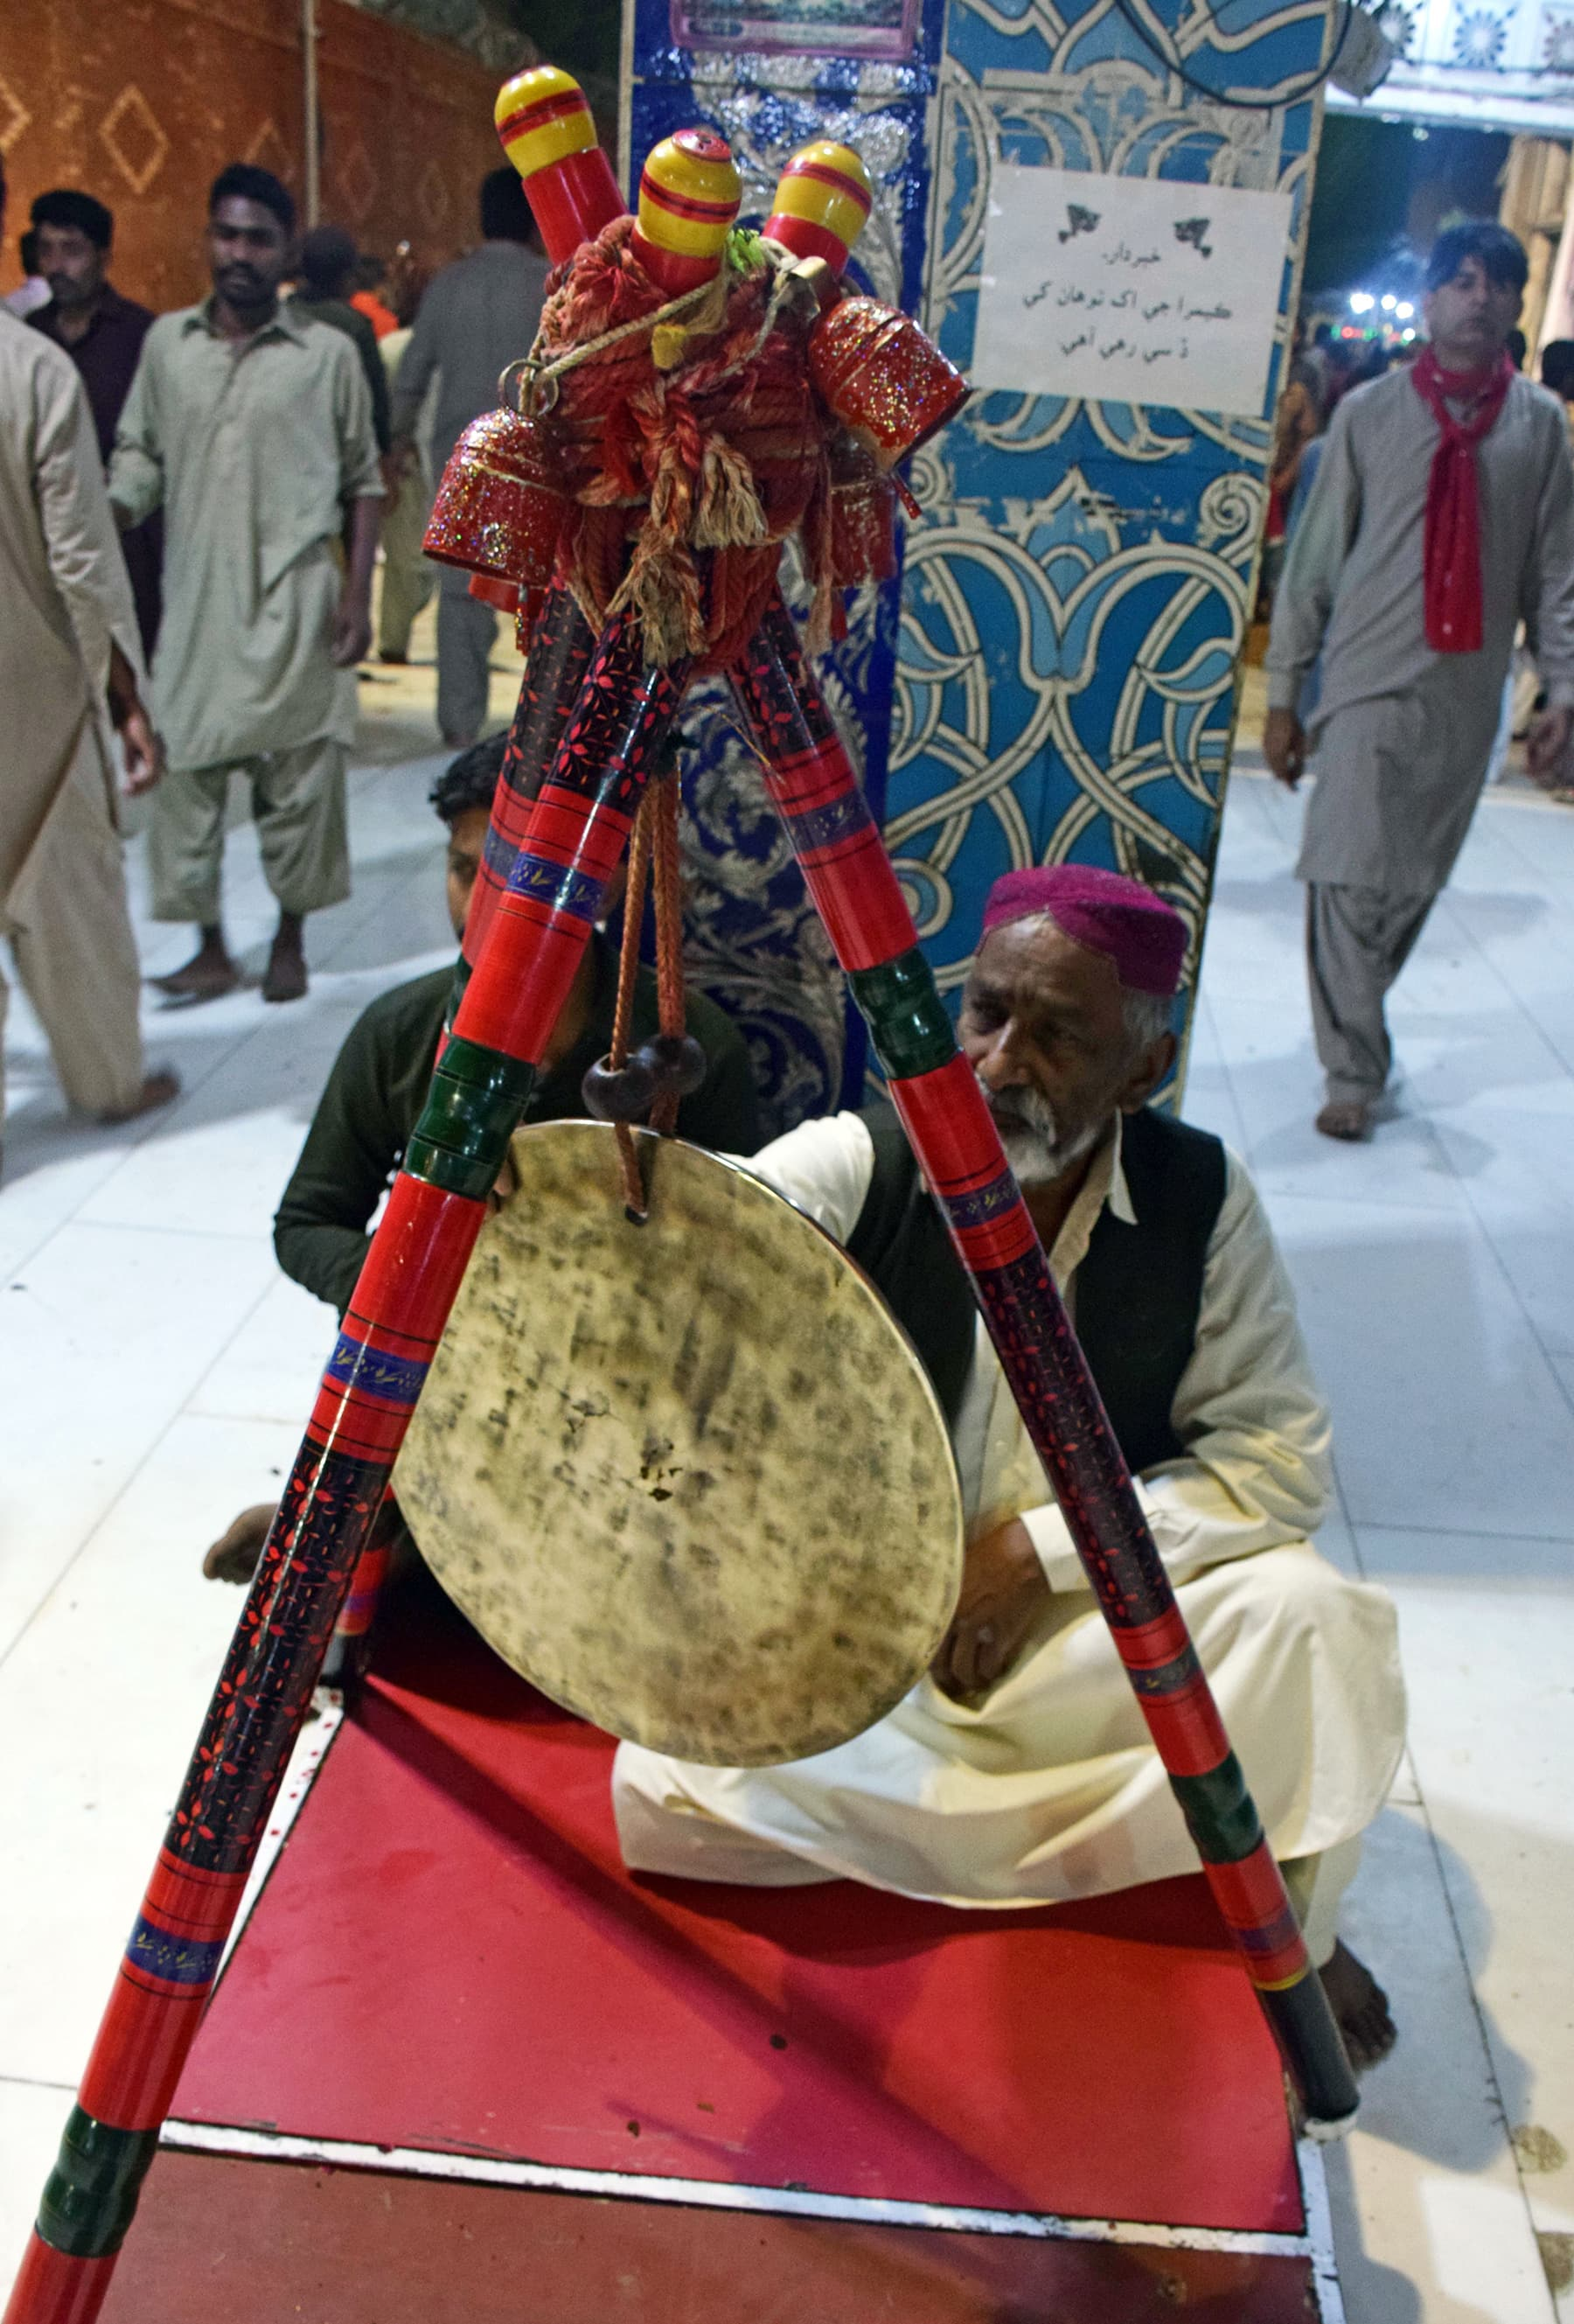 An elderly devotee sits in the shrine's courtyard to bang on a gong as a signal.